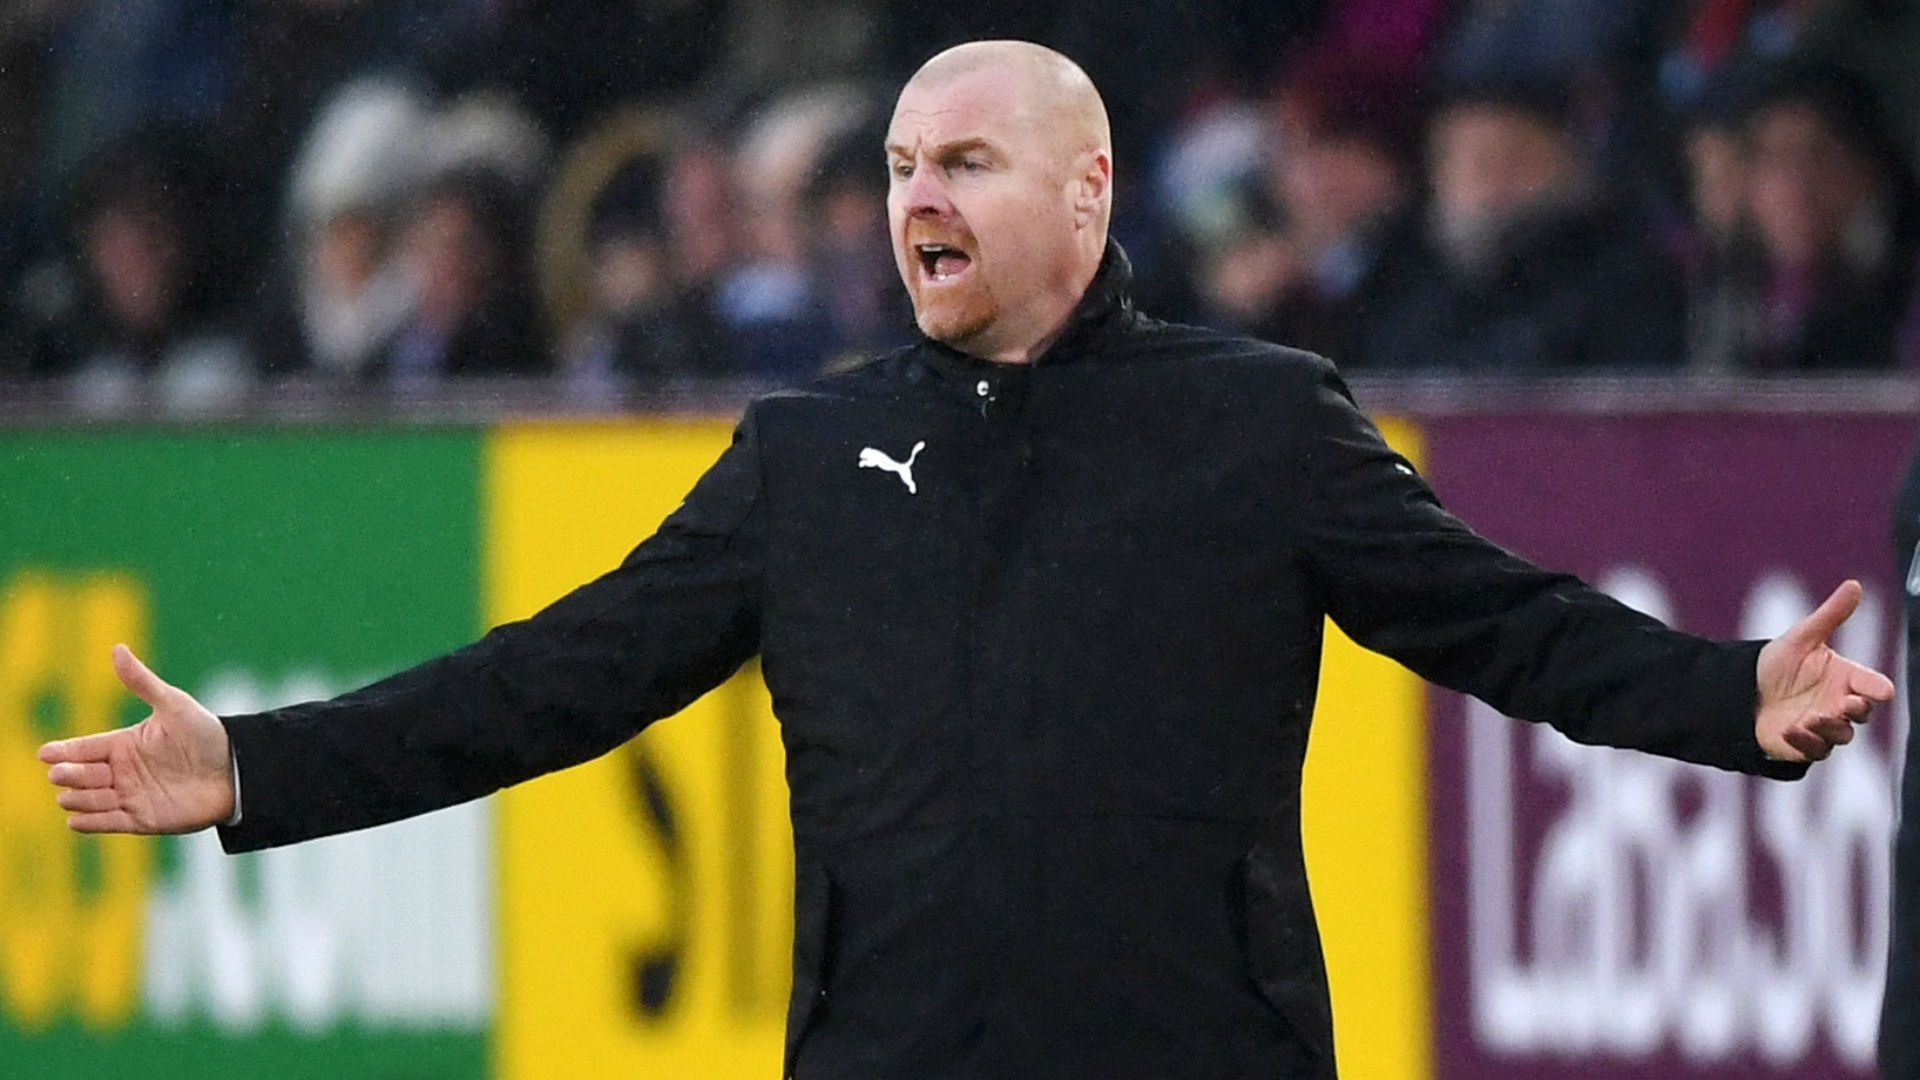 Dyche relieved as lady luck smiles on Burnley